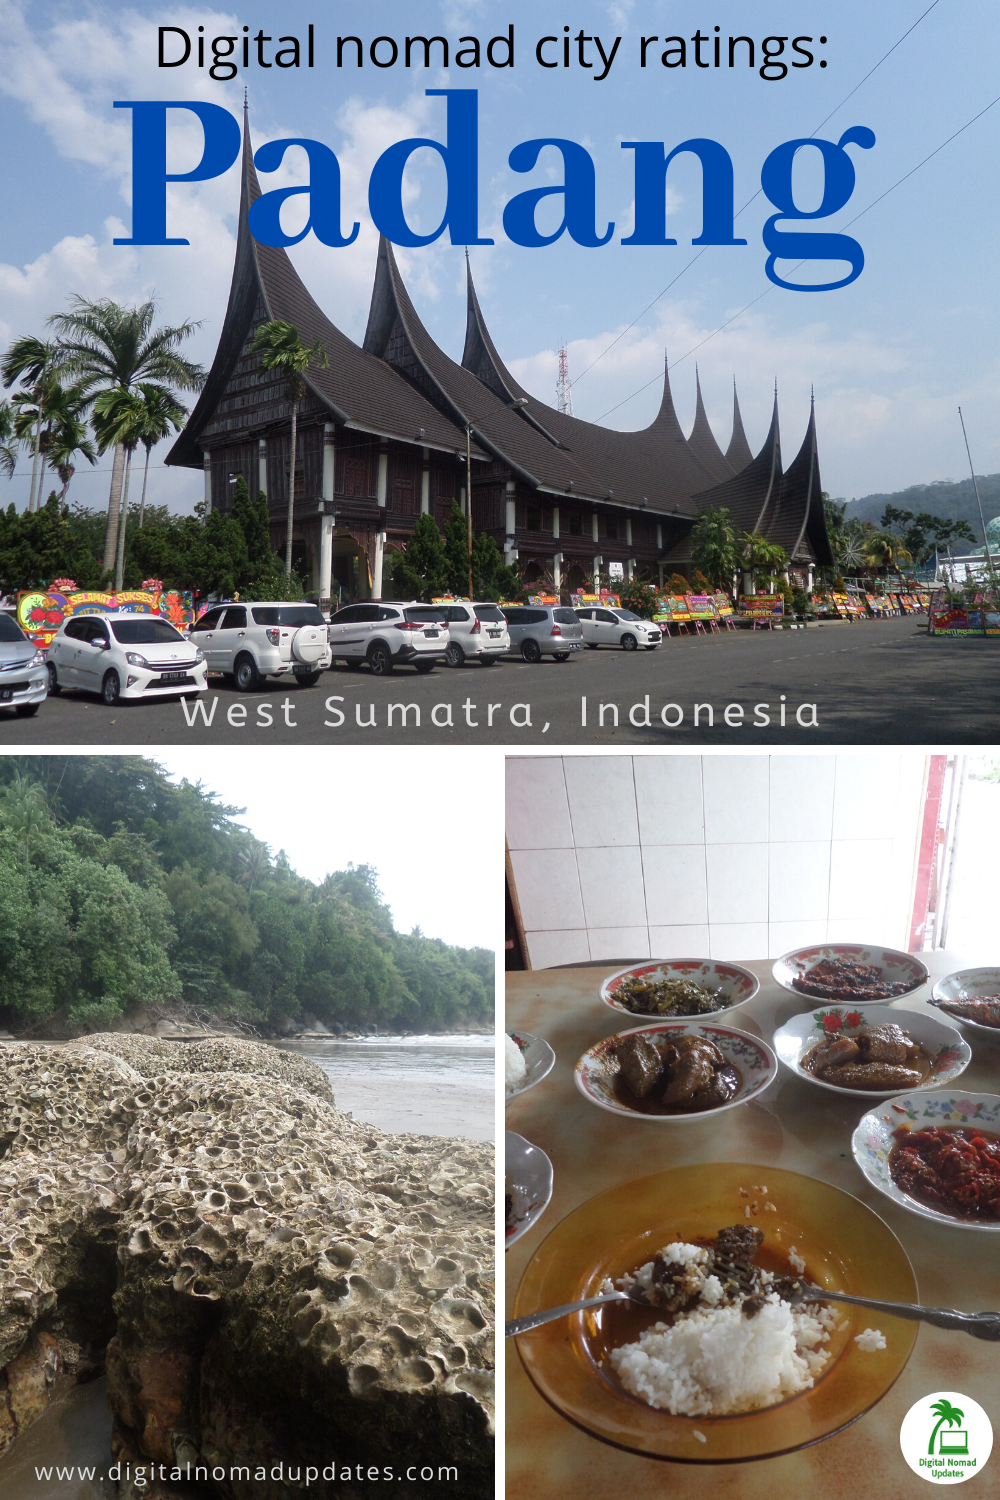 How good is Padang in West Sumatra for digital nomads? Check out my rating in ten categories. #padang #digitalnomads #westsumatra #indonesia